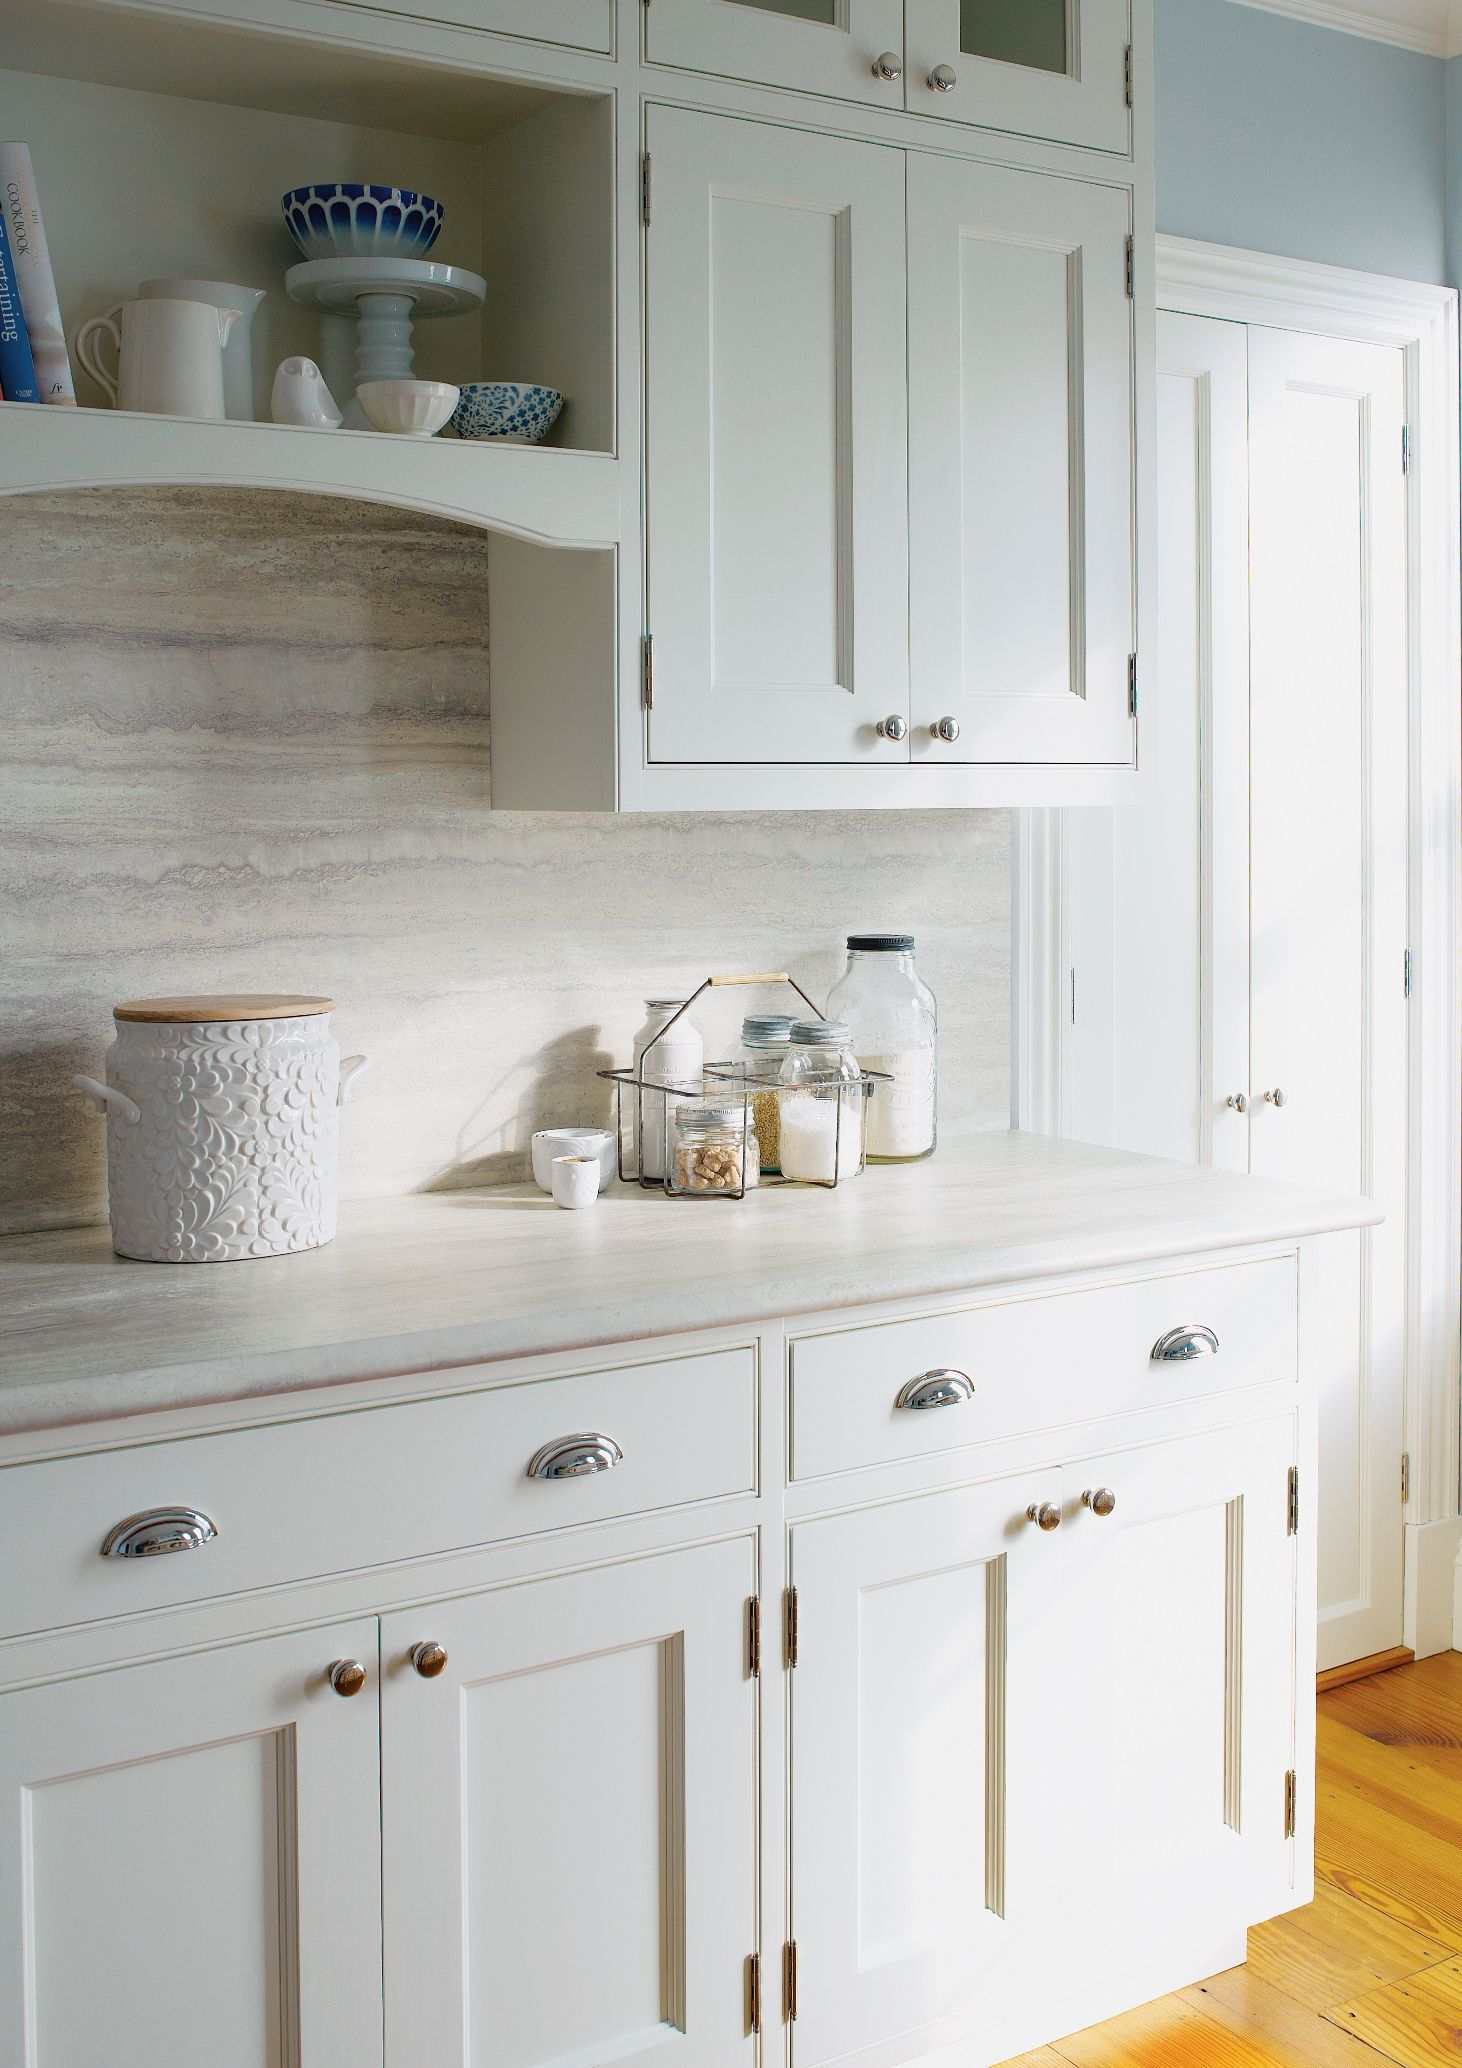 In Search Of The Perfect Dream Kitchen This Is High On